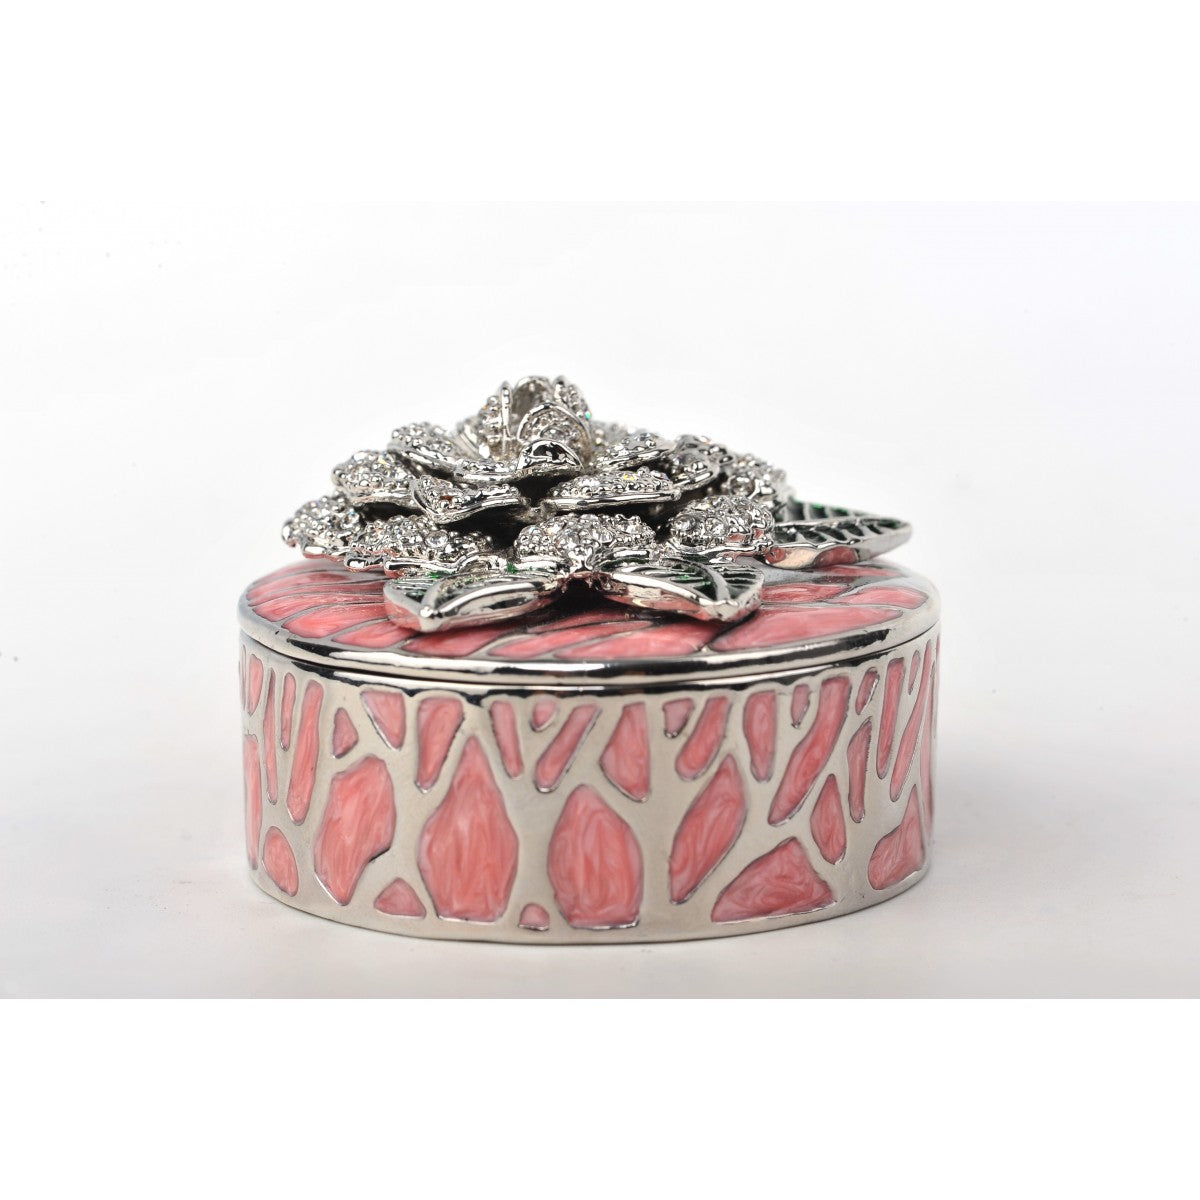 Valentine's Day Pink Trinket Box Decorated Swarovski by Keren Kopal